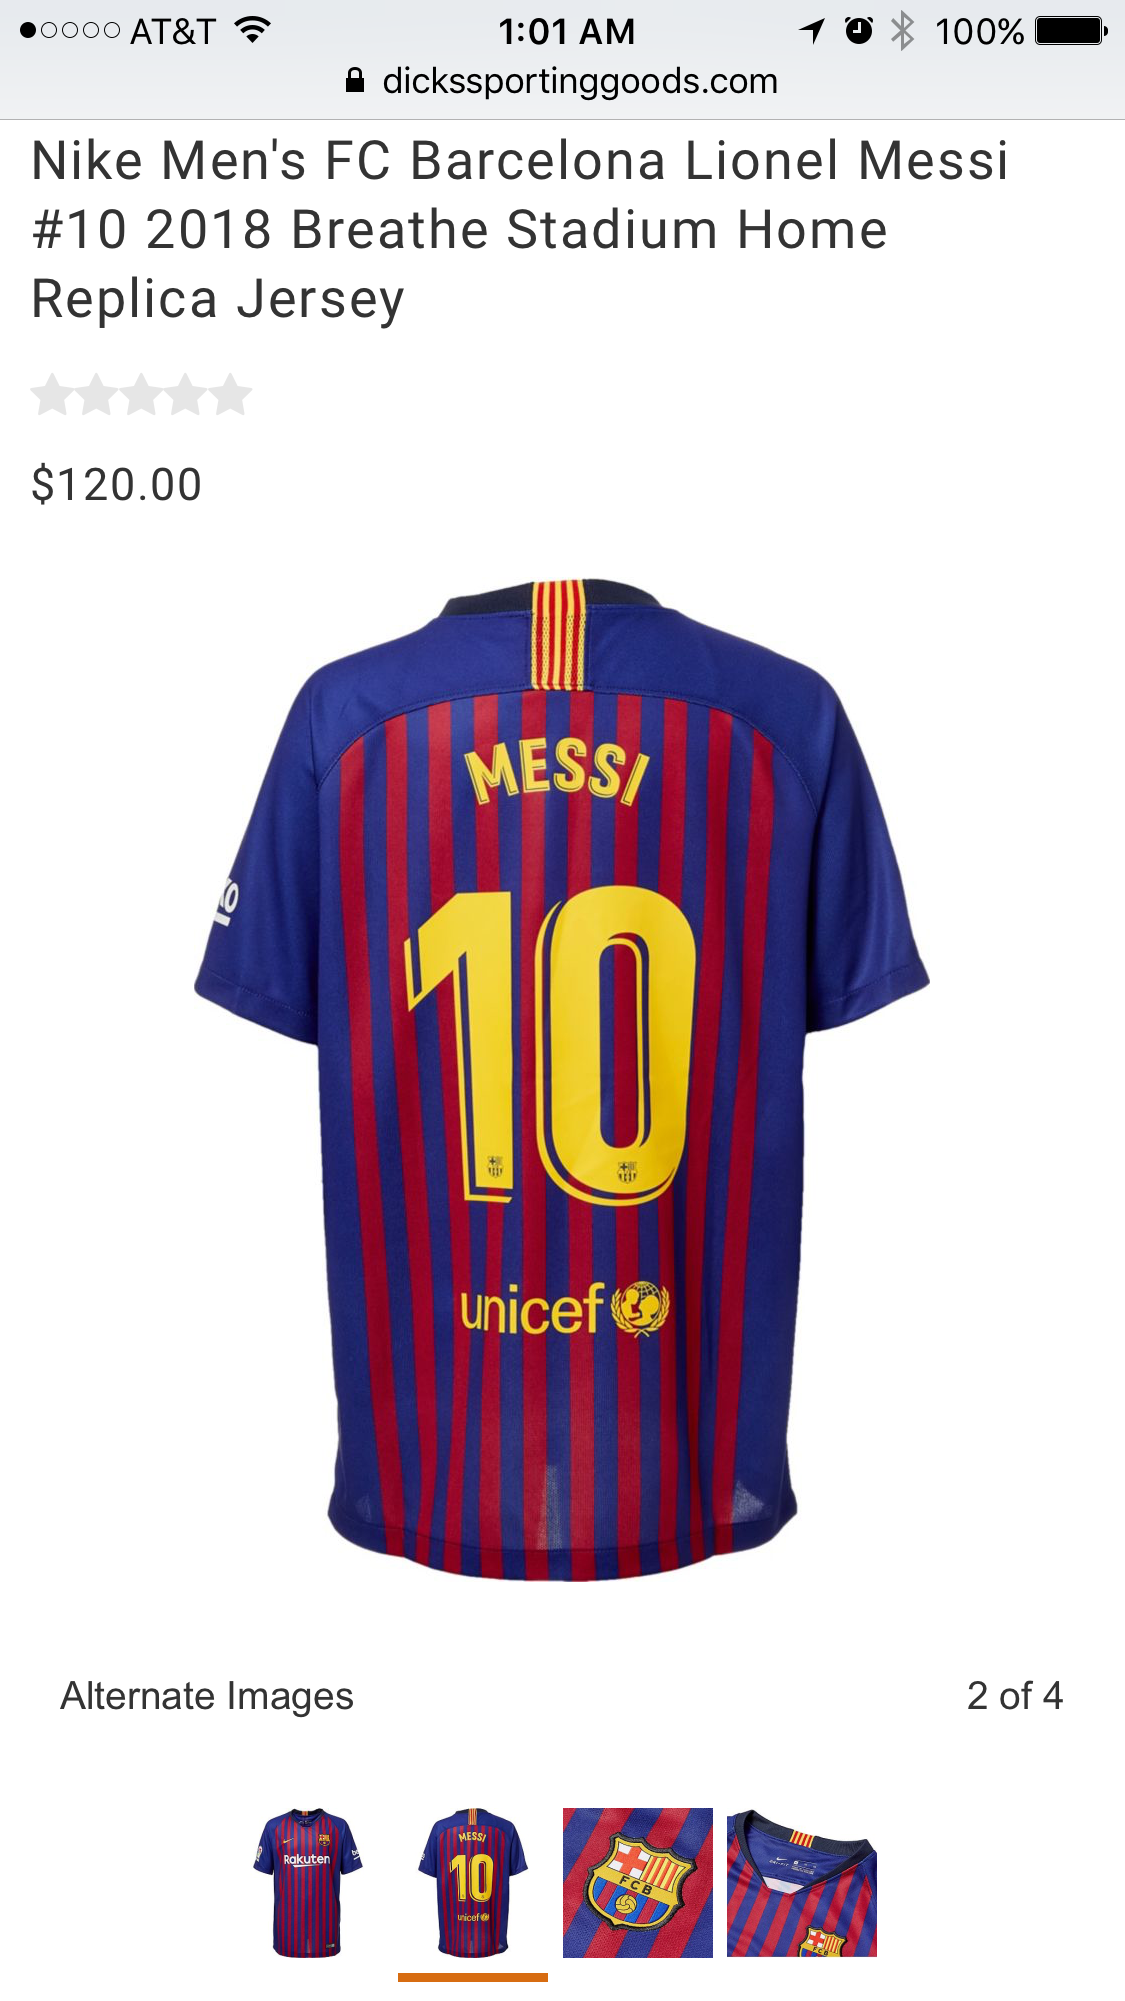 new style 03fe1 46fc2 Just got my 2018/2019 Barca Messi Jersey! I'm ready now ...